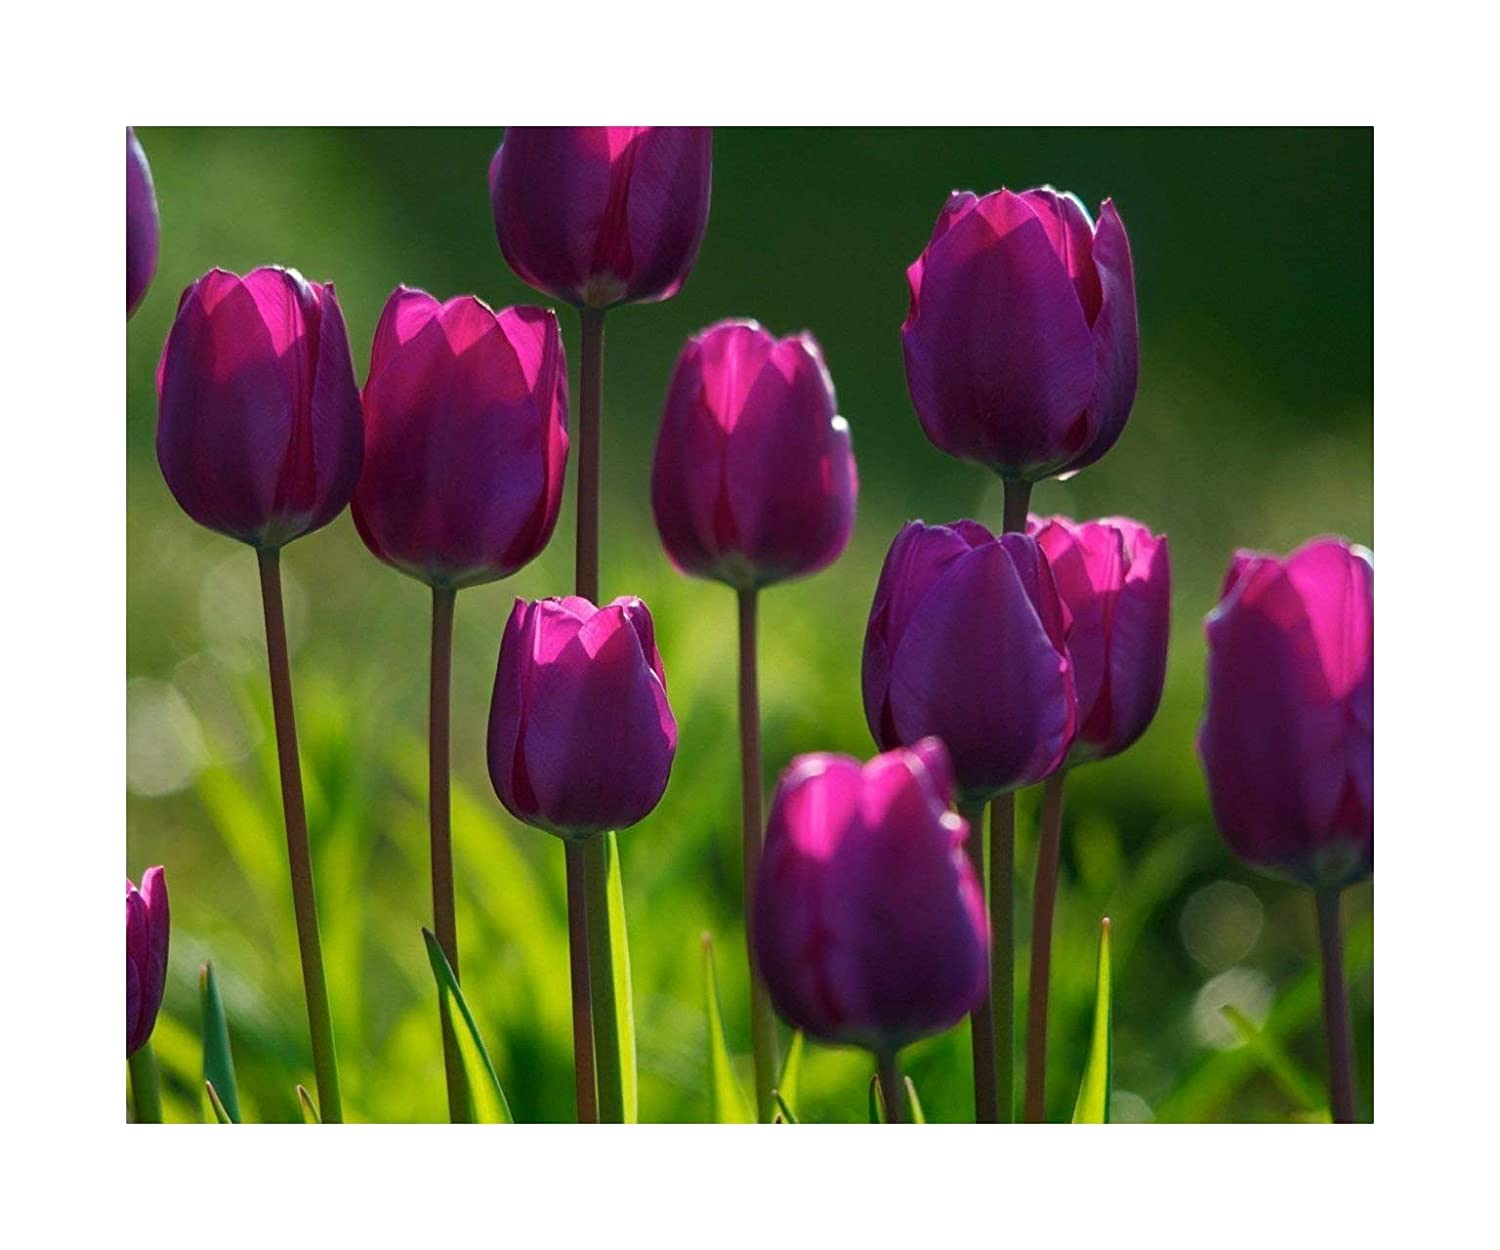 25 Tulip 'Purple Flag' Triumph Tulips Spring Flowering Bulbs, Flowering Guarantee by Plug Plants Express Limited